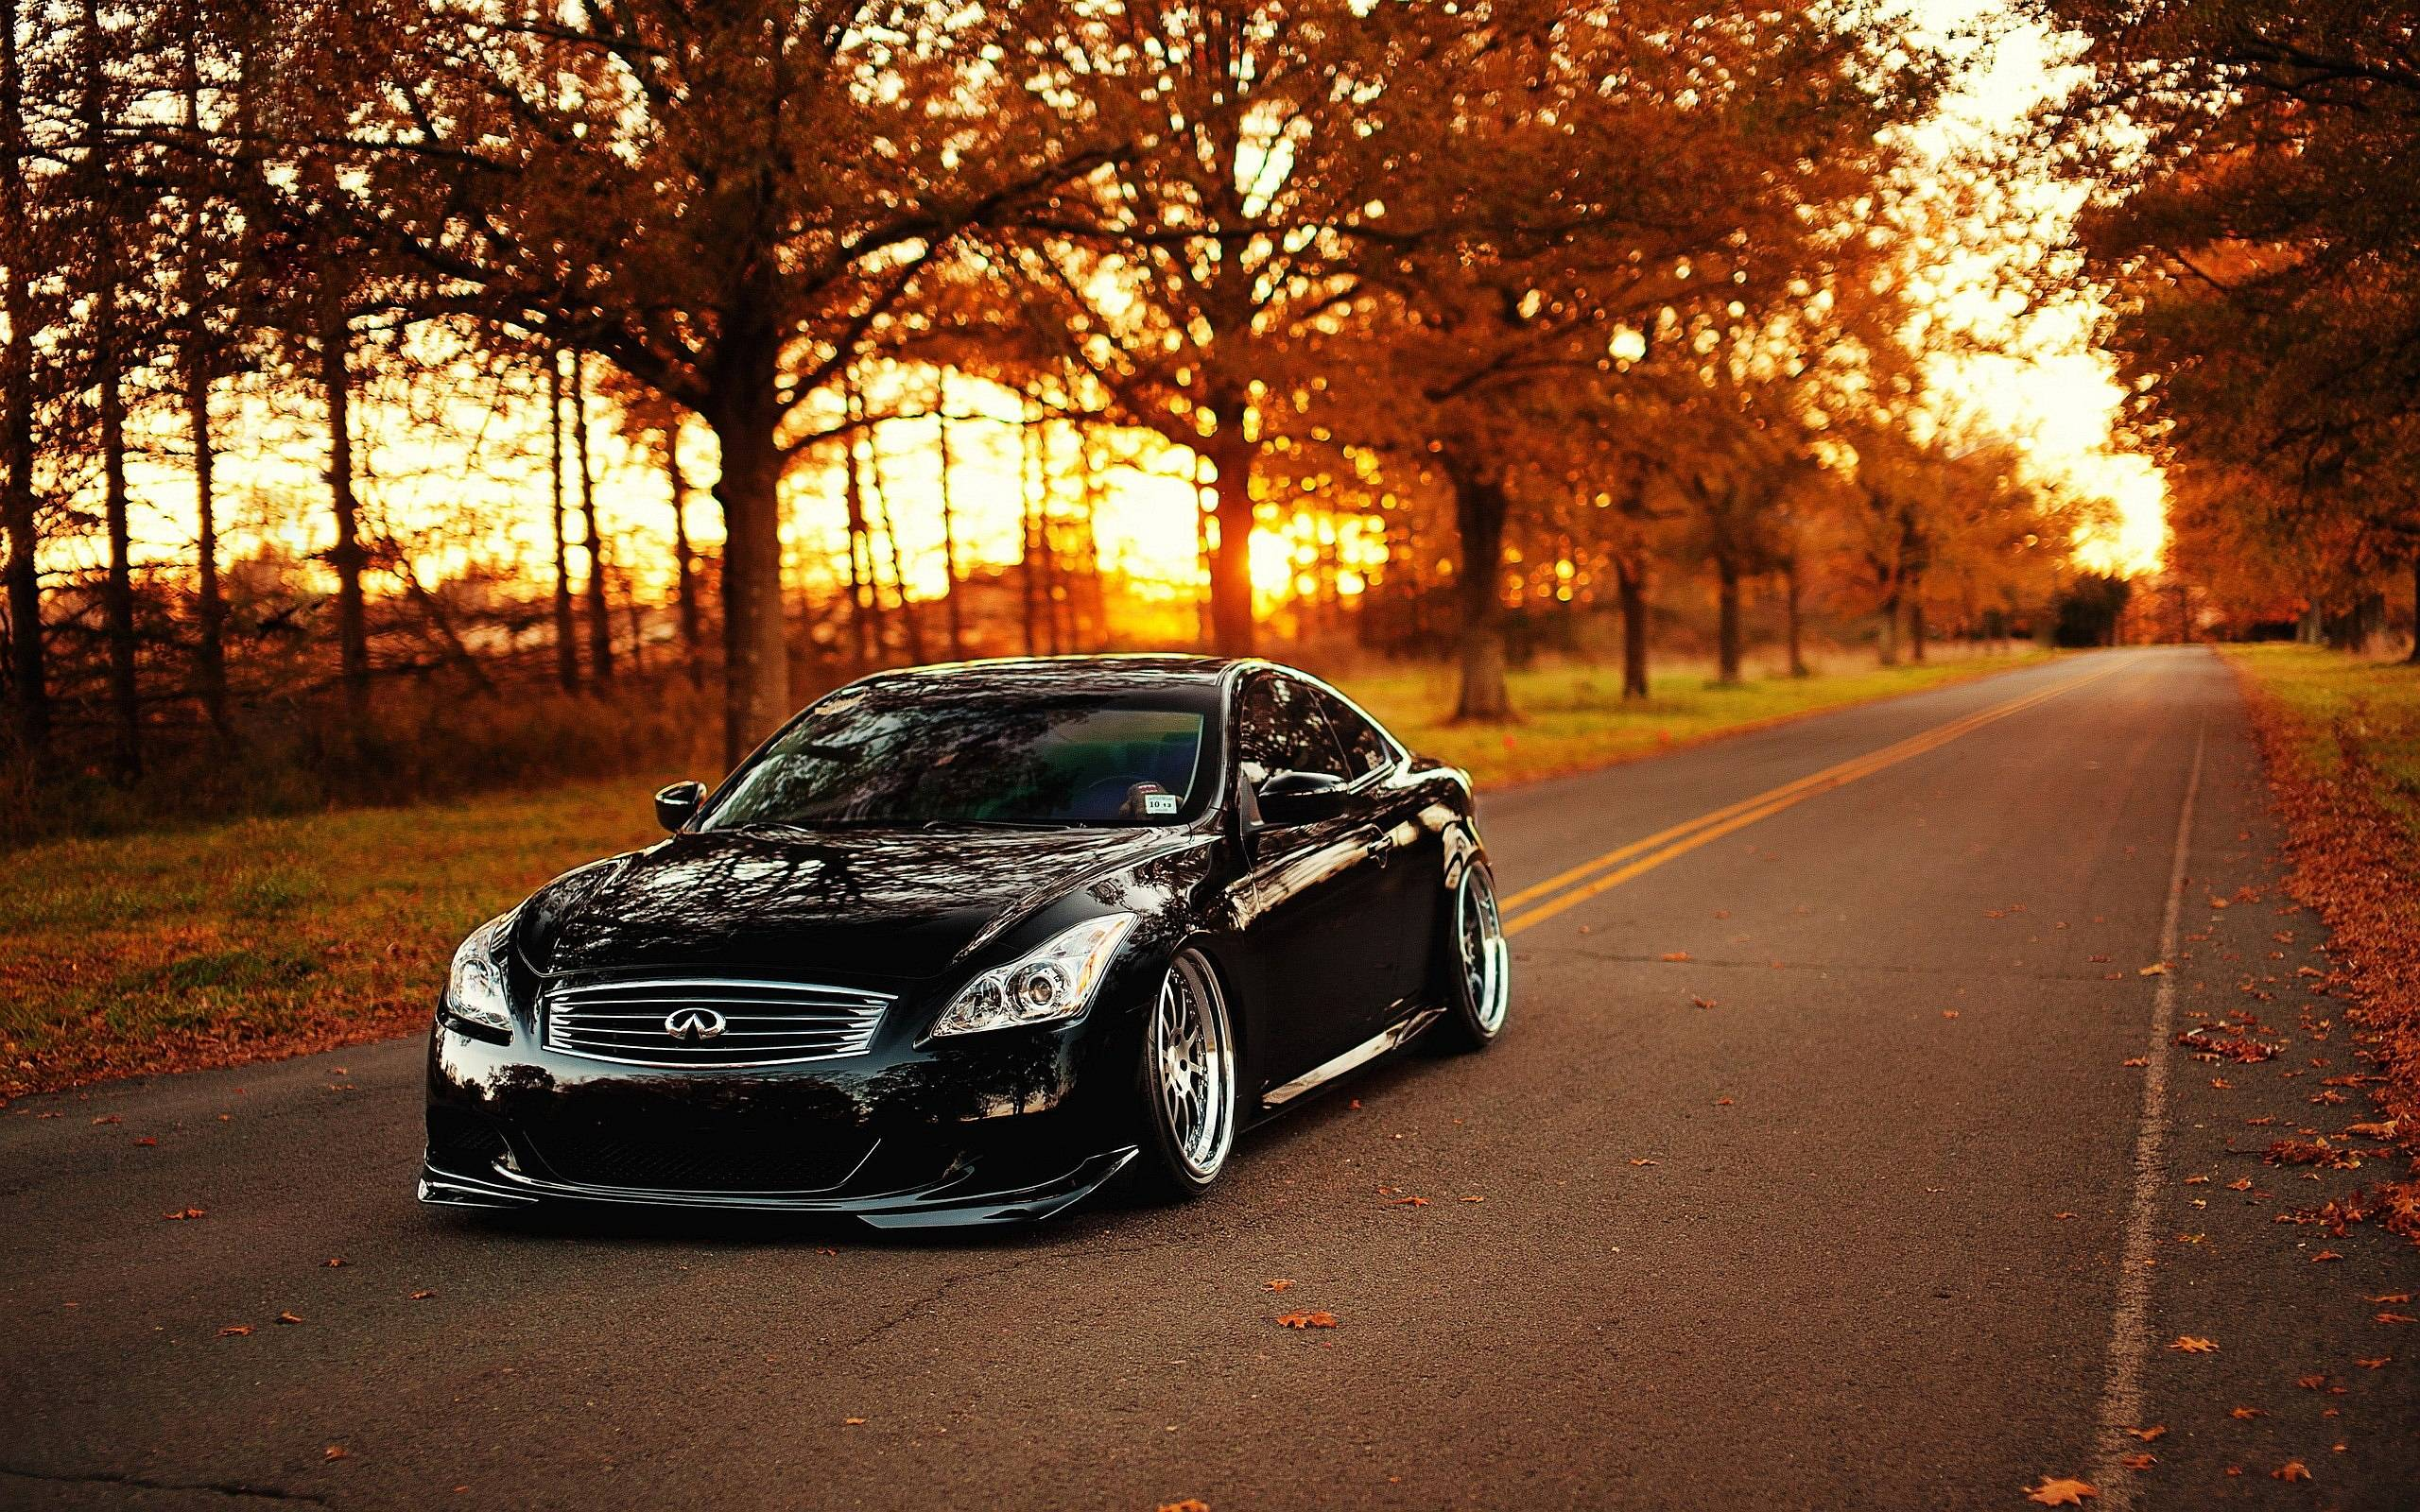 Infiniti G37 Wallpapers Top Free Infiniti G37 Backgrounds Wallpaperaccess